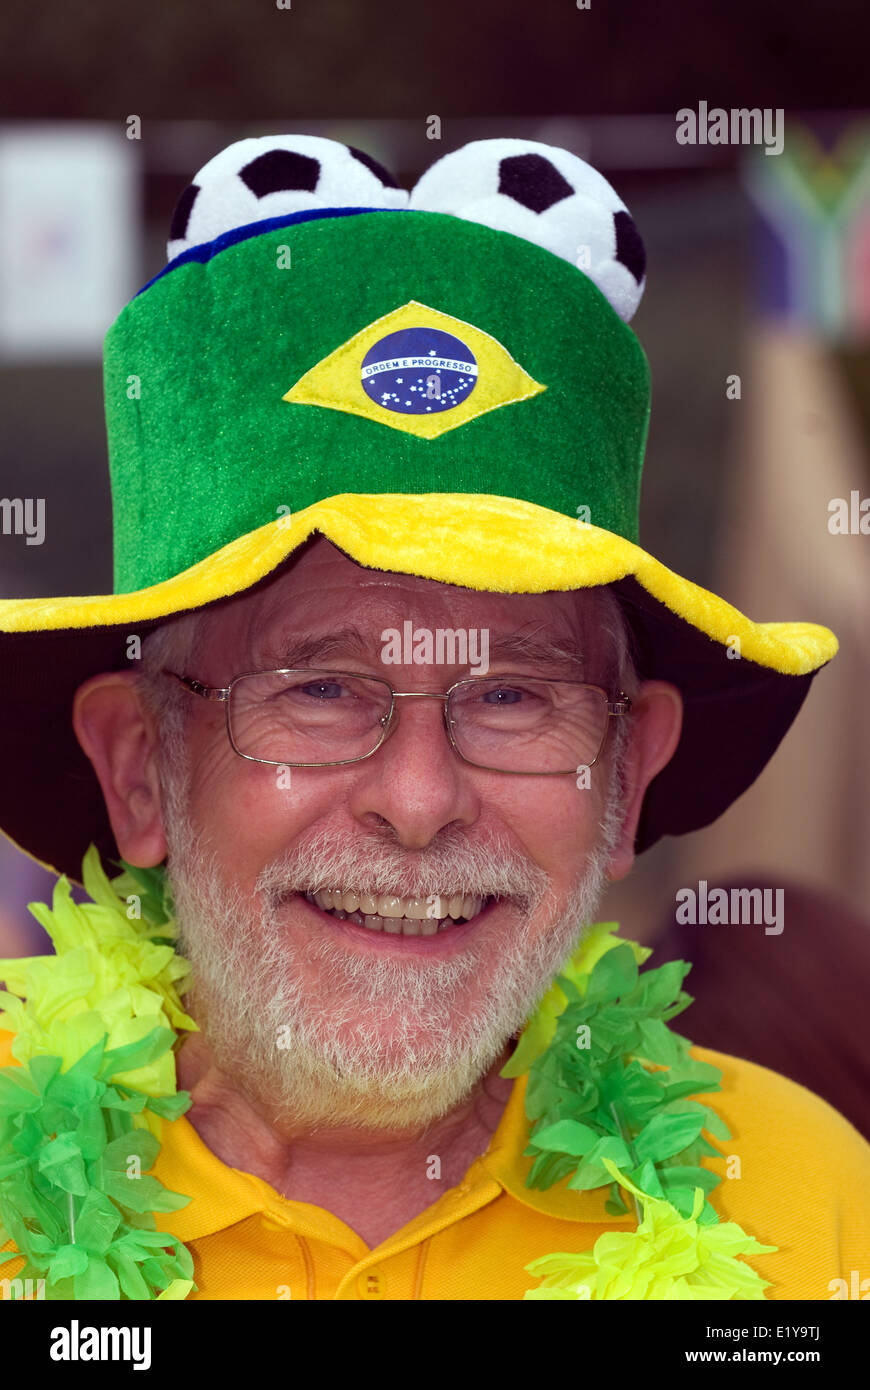 Elderly man at a village summer fair which had a Brazil/World Cup 2014 theme, Dockenfield, UK. - Stock Image